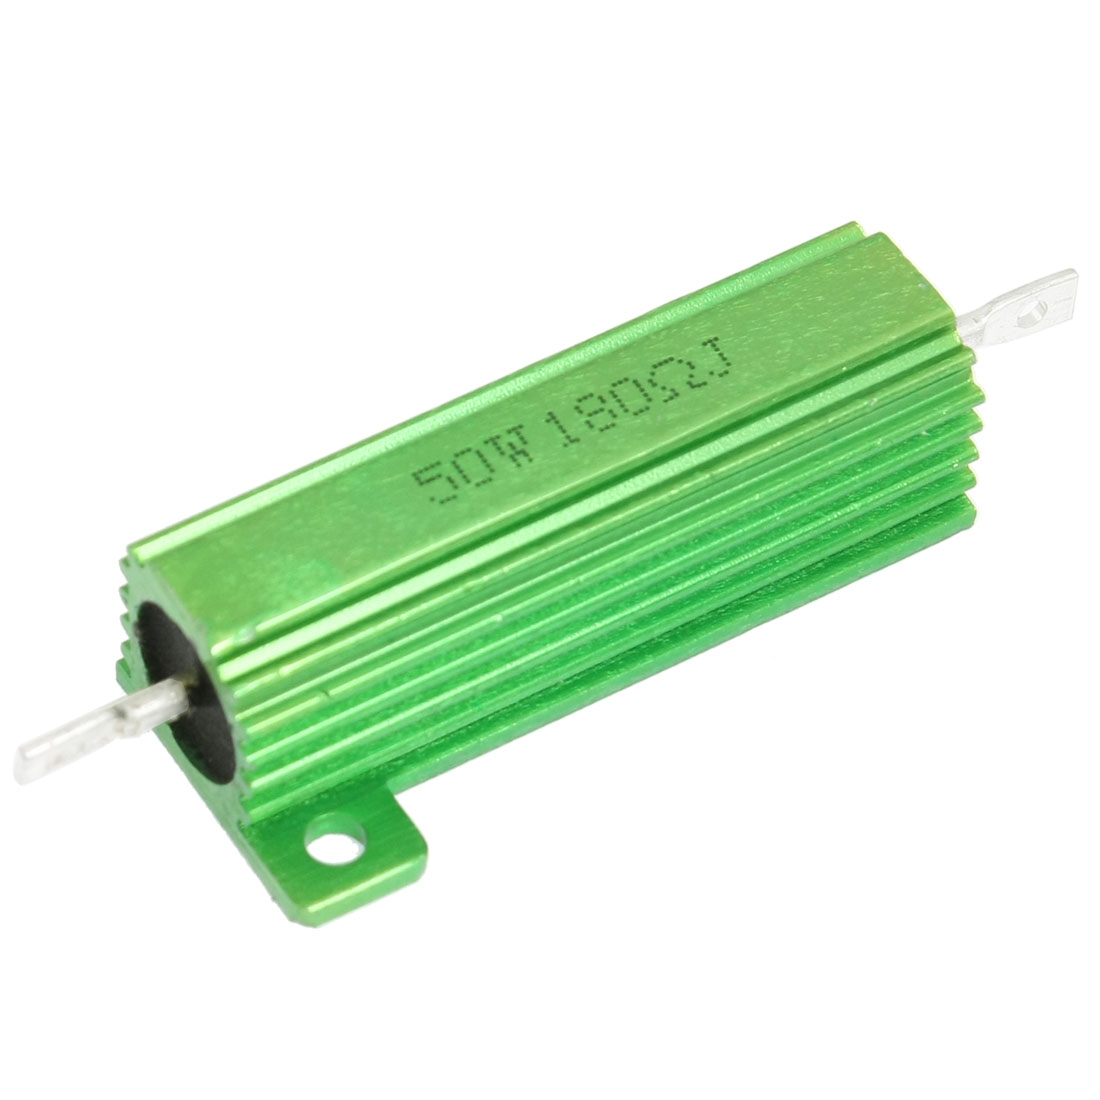 50W 180 Ohm Chassis Mounted Green Aluminum Case Wirewound Resistor